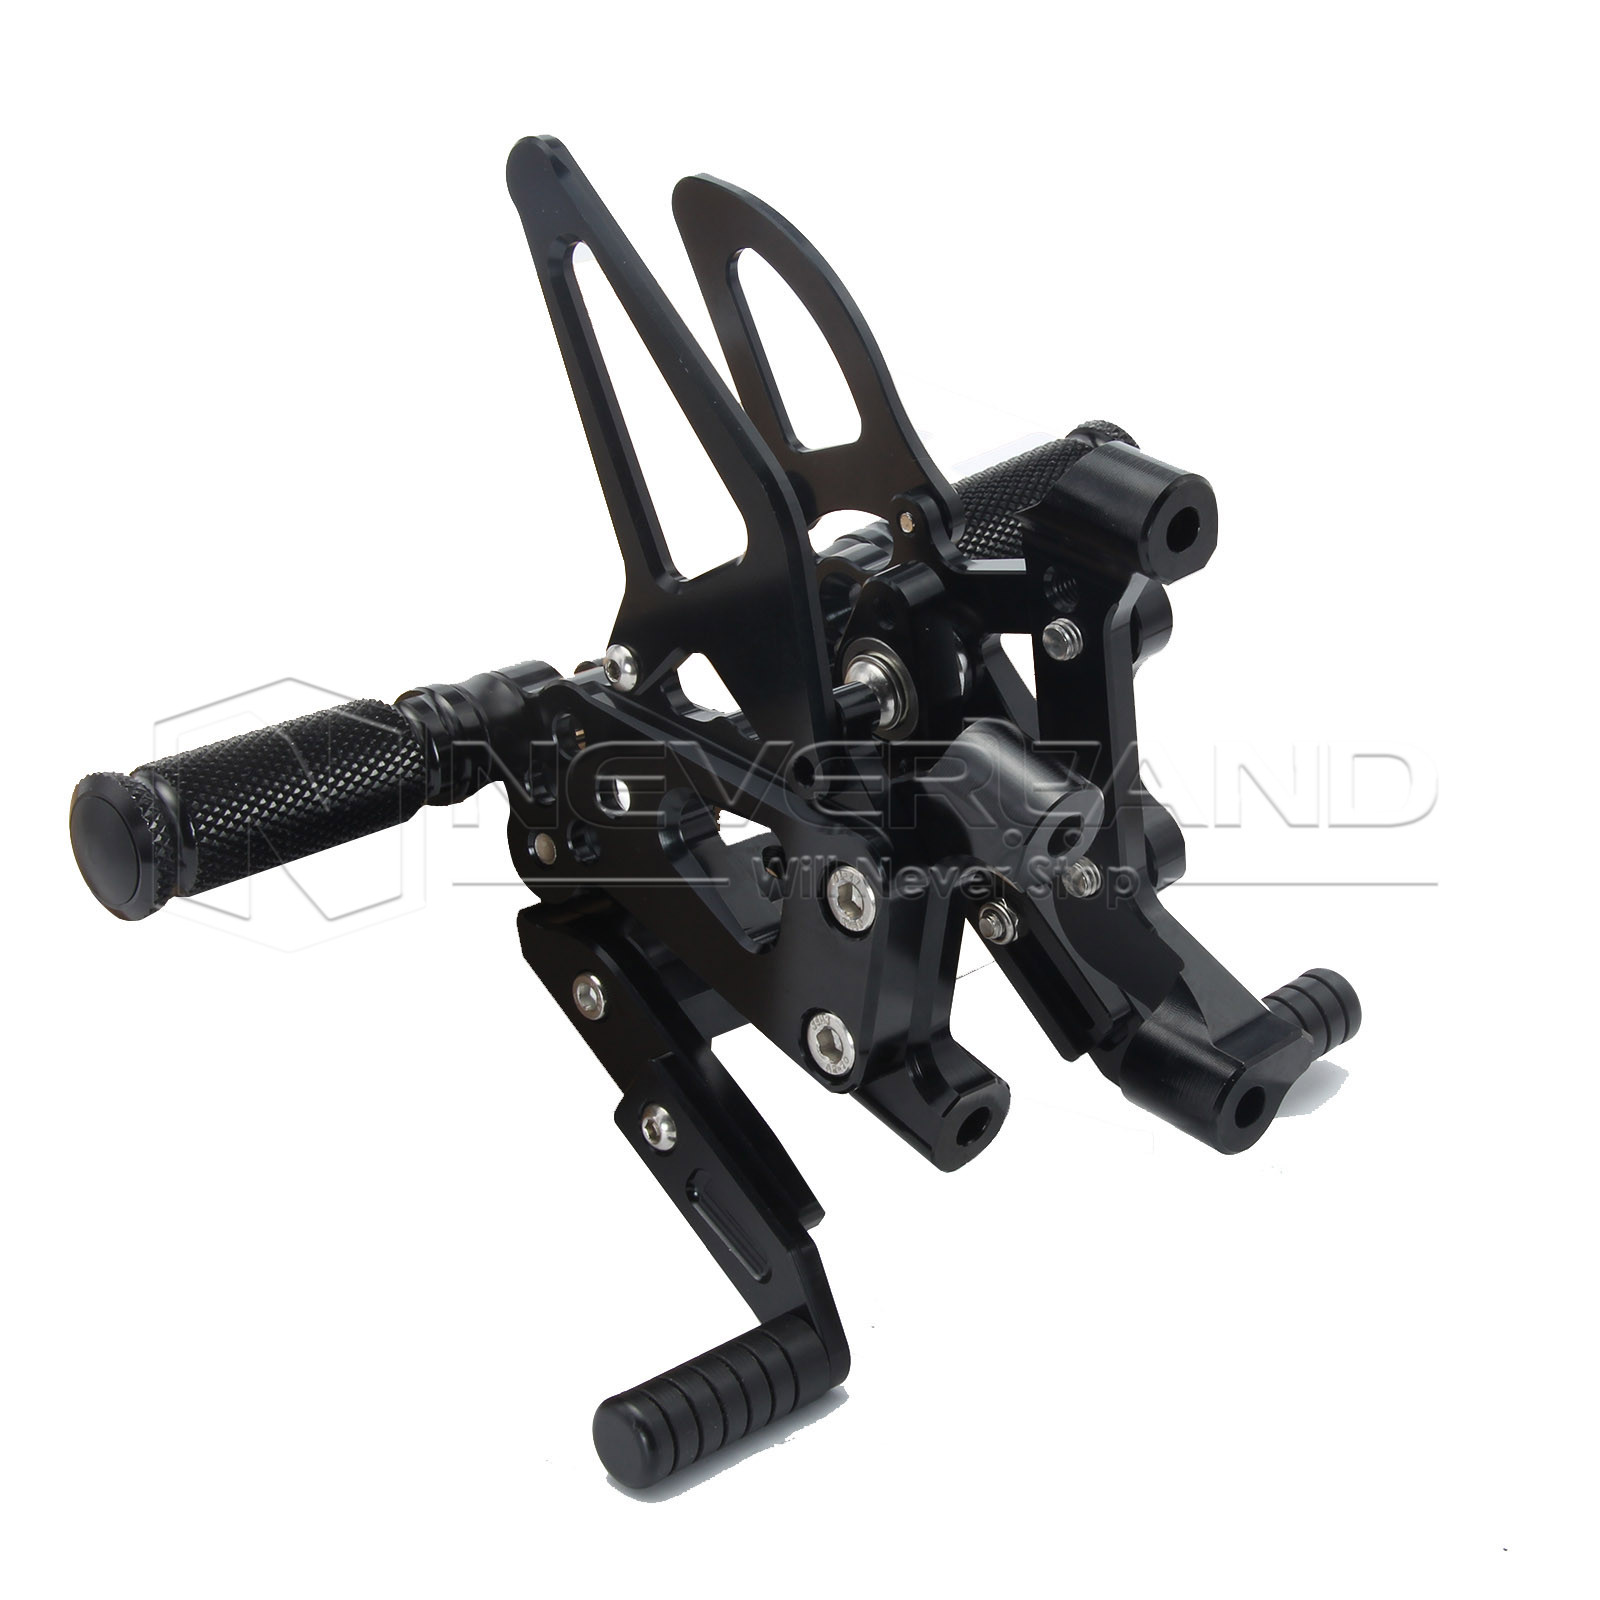 Black Foot Rests CNC Rear Set Adjustable Rearsets Foot Pegs Motorcycle Footrests For Ducati 1199 PANIGALE/S D20 8 color for ducati 999 949 749 748 916 996 998 cnc adjustable rearsets rear set motorcycle footrest hot high quality moto pedal